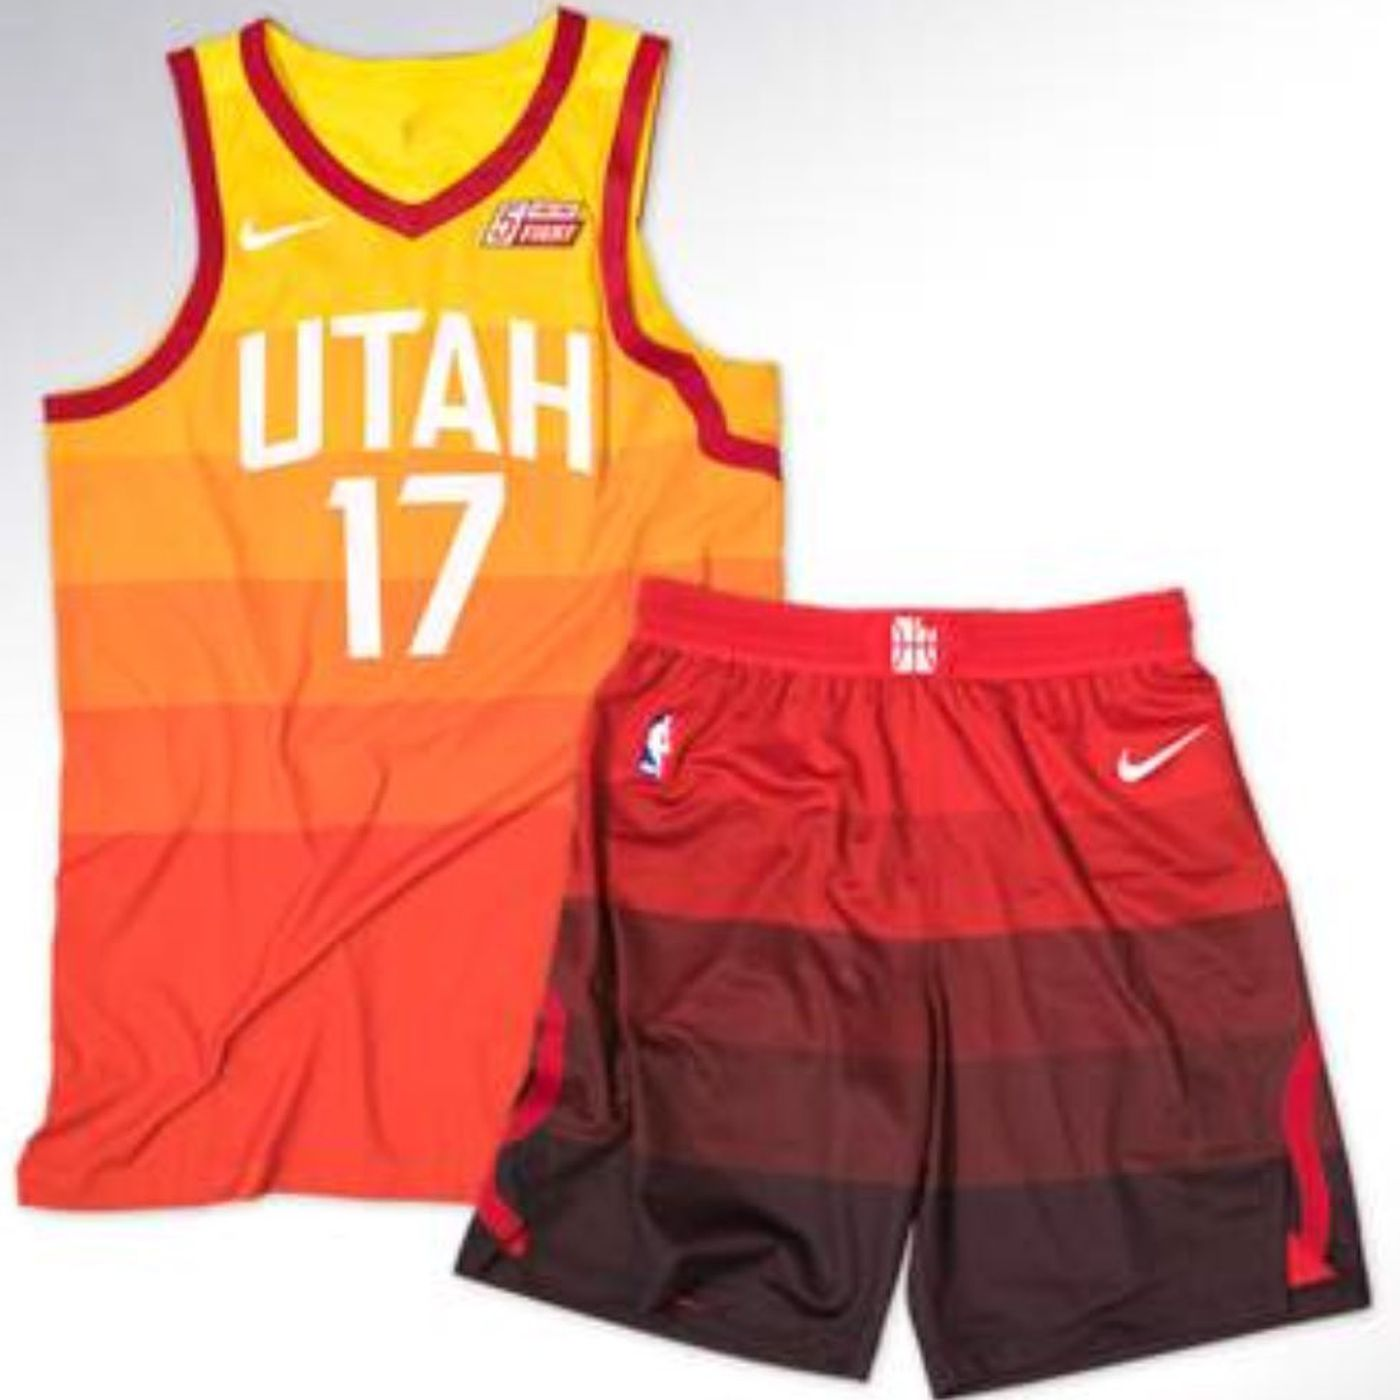 purchase cheap 03ae3 f9d39 New Utah Jazz uniforms pay homage to Utah's sunset and have ...